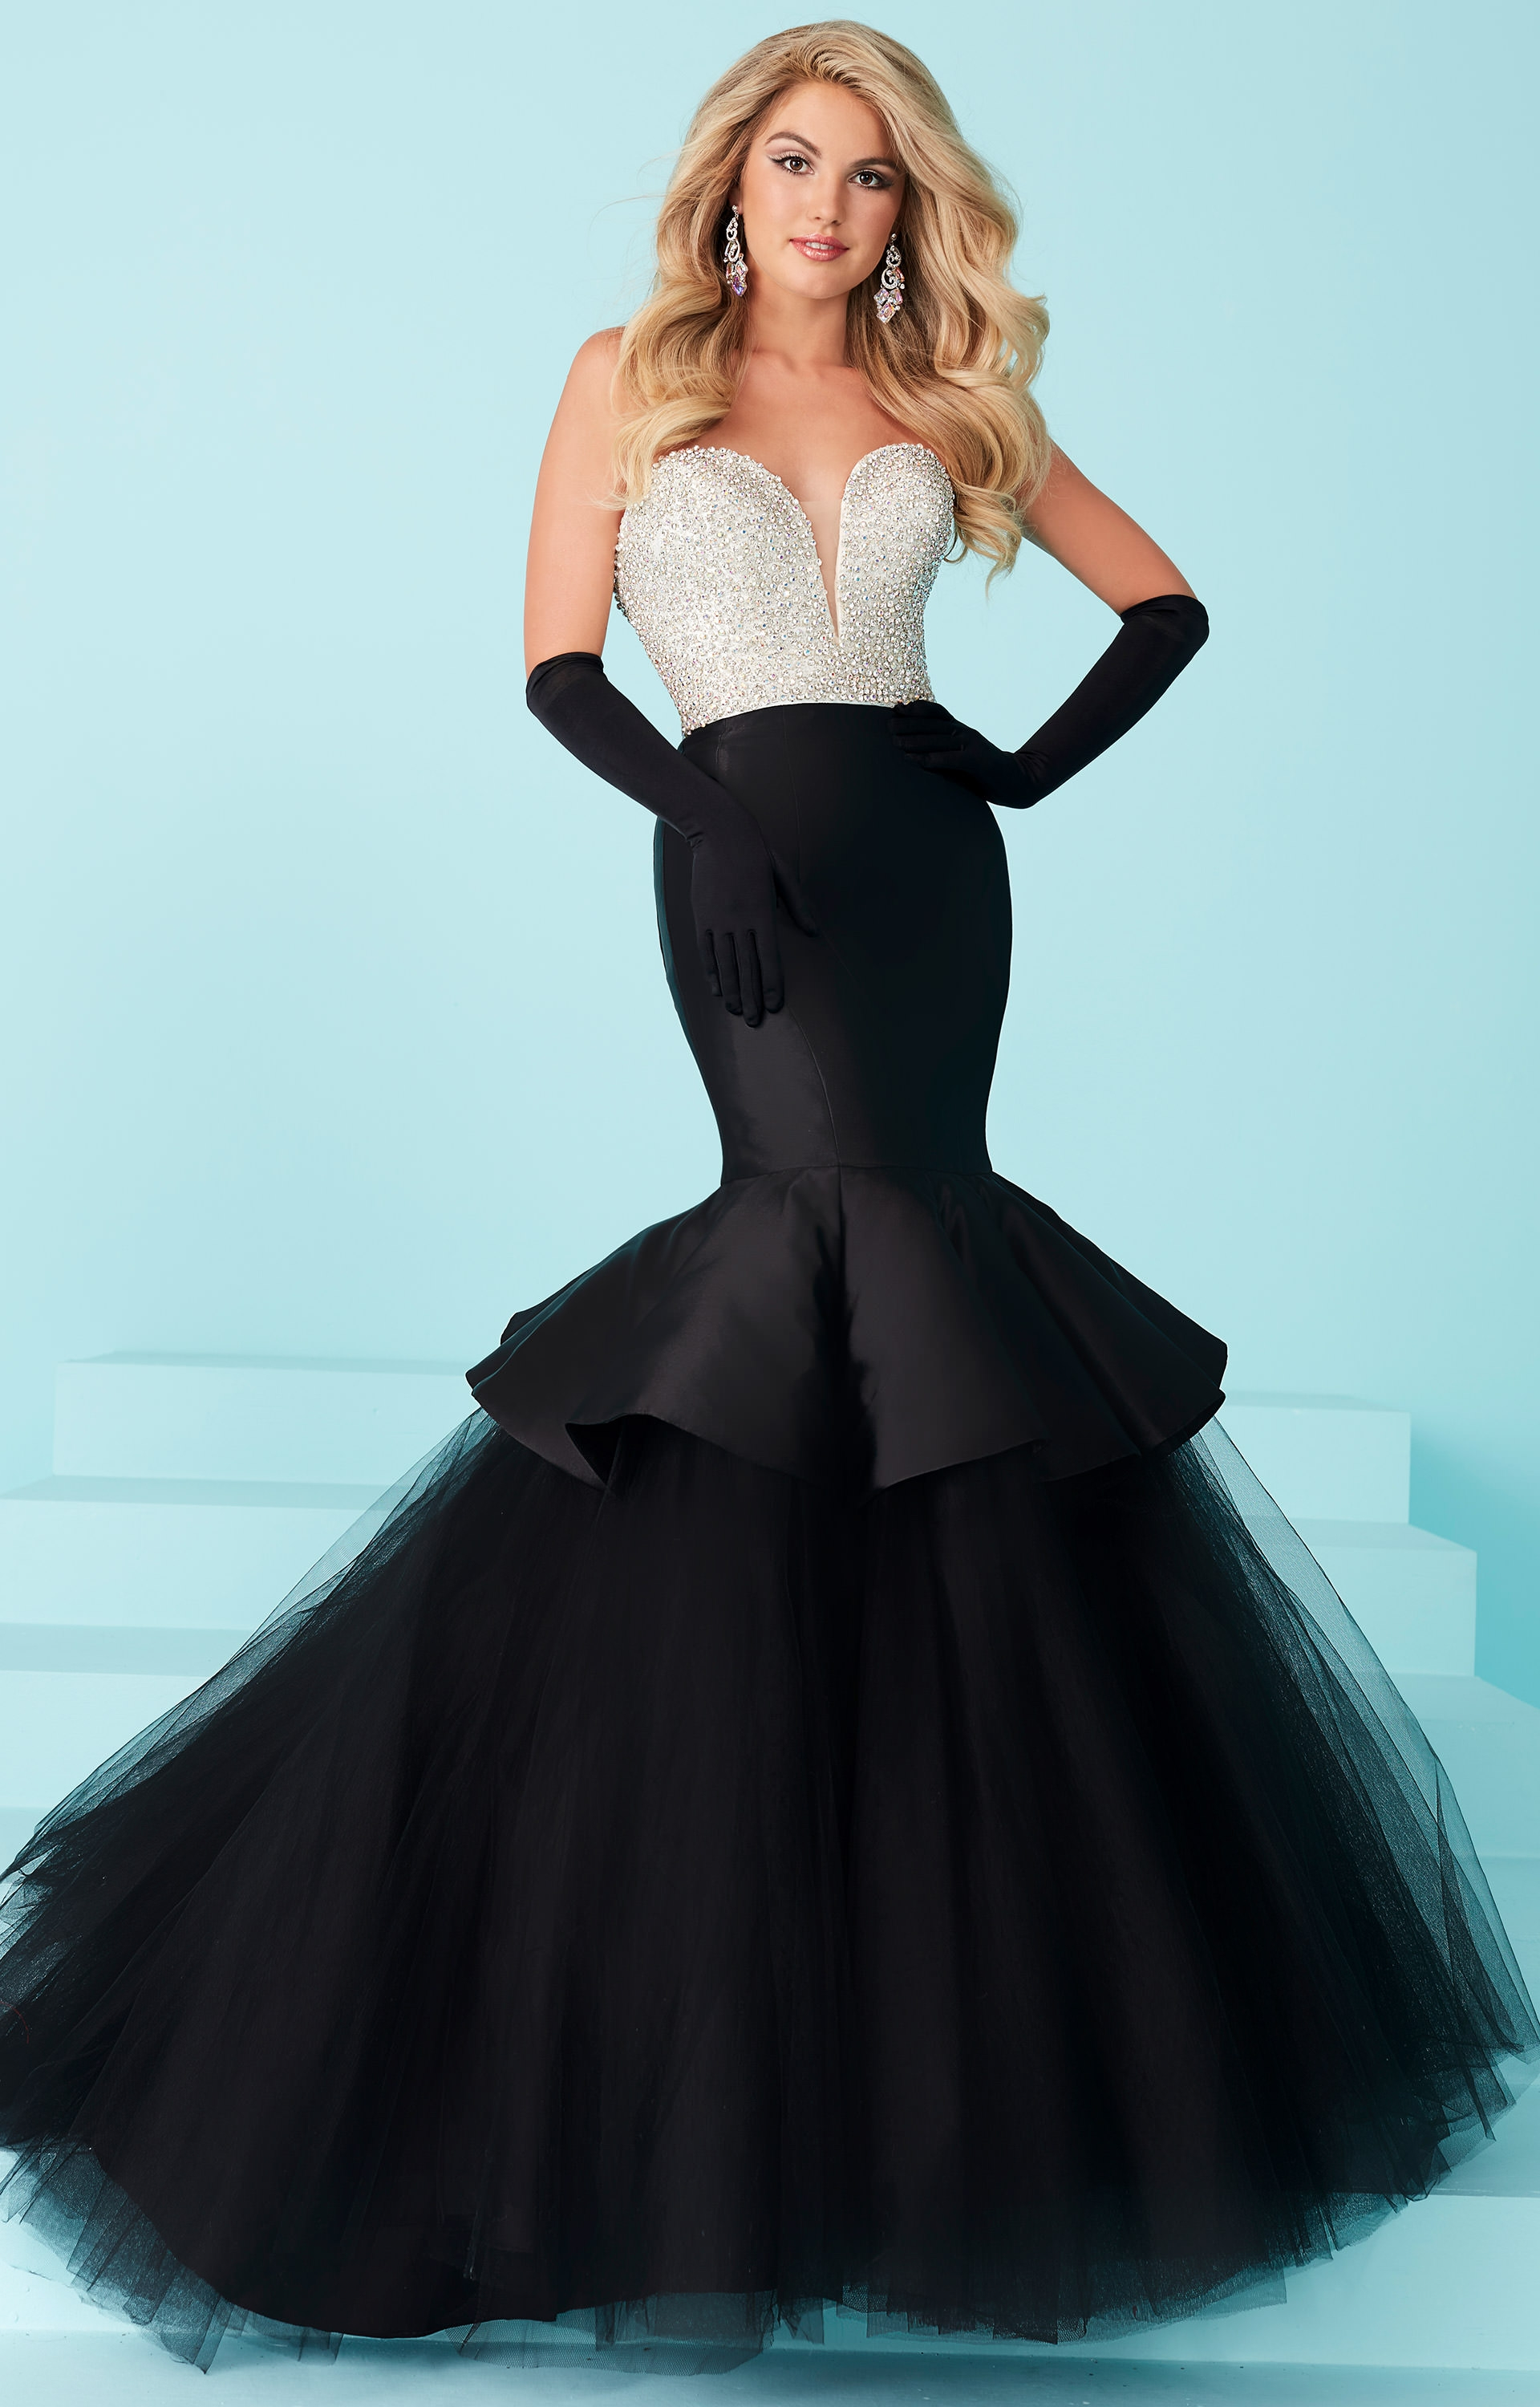 Tiffany Designs 16217 - Classy Strapless Mermaid Dress Prom Dress